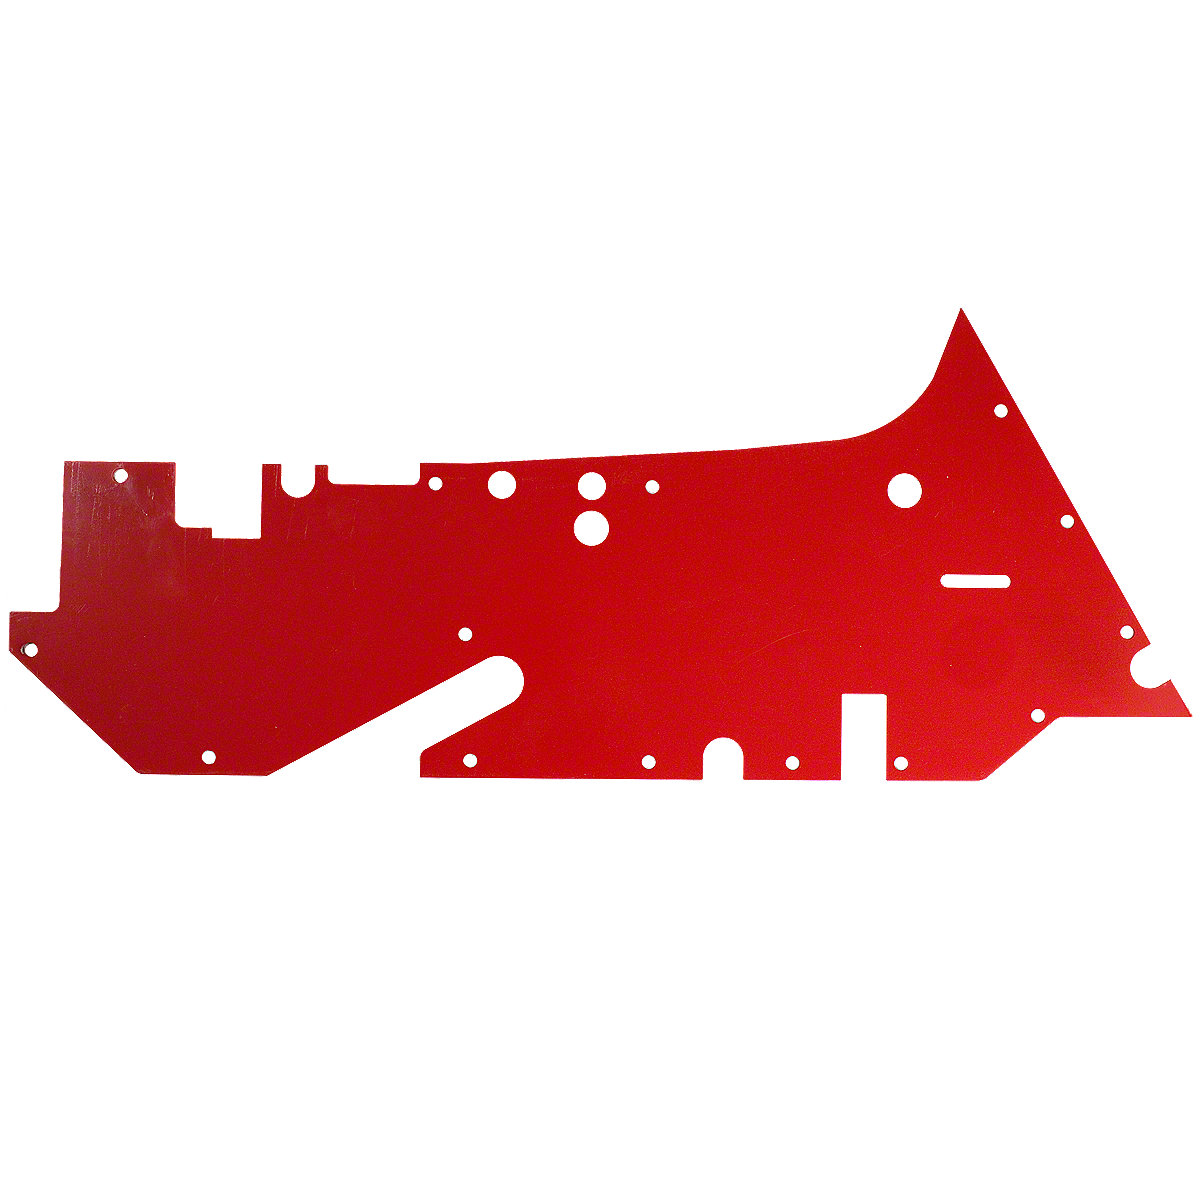 Left Hand Side Panel With Choke Slot For Allis Chalmers: D14, D15, I60.